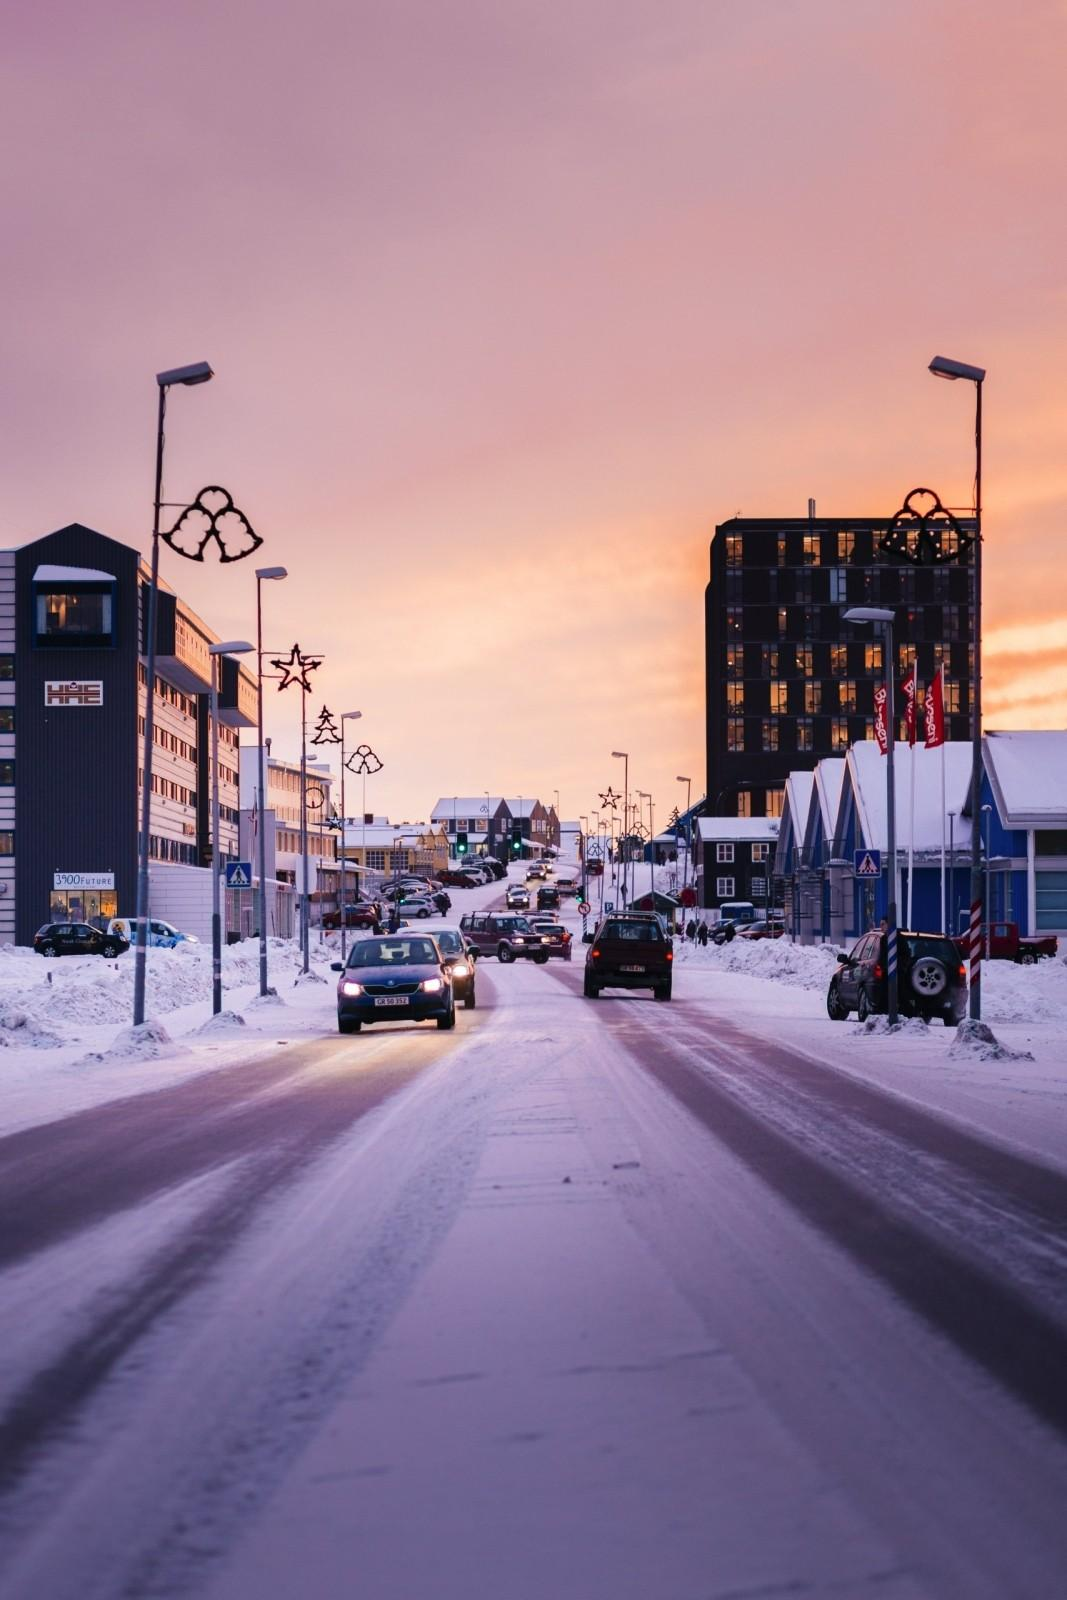 Before-Traffic on the main road in Nuuk